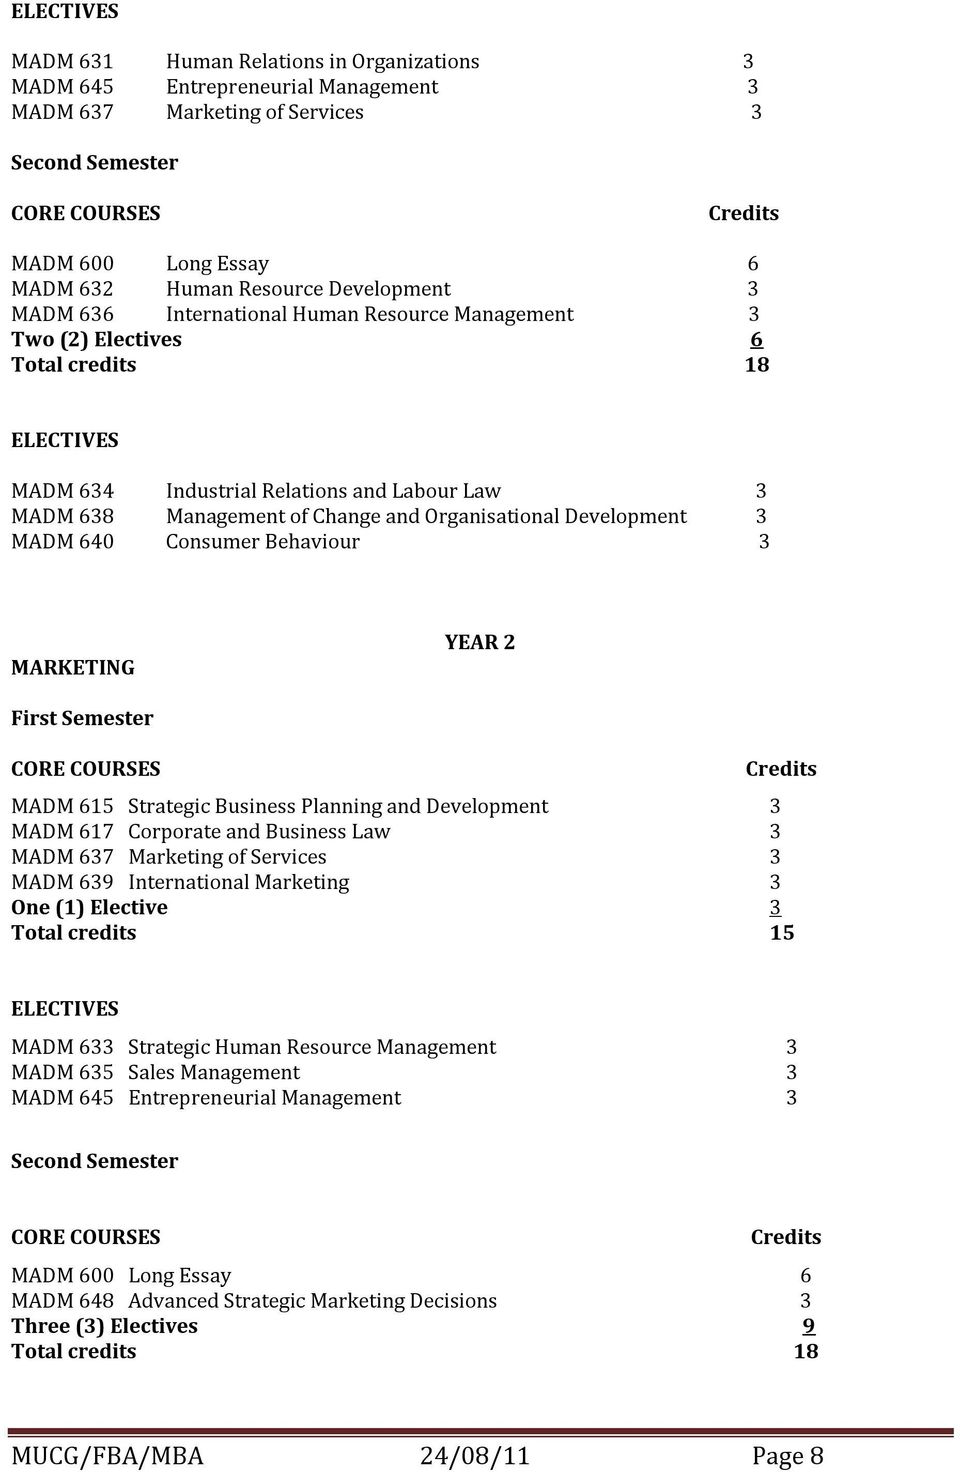 Development 3 MADM 640 Consumer Behaviour 3 MARKETING YEAR 2 First Semester MADM 615 Strategic Business Planning and Development 3 MADM 617 Corporate and Business Law 3 MADM 637 Marketing of Services